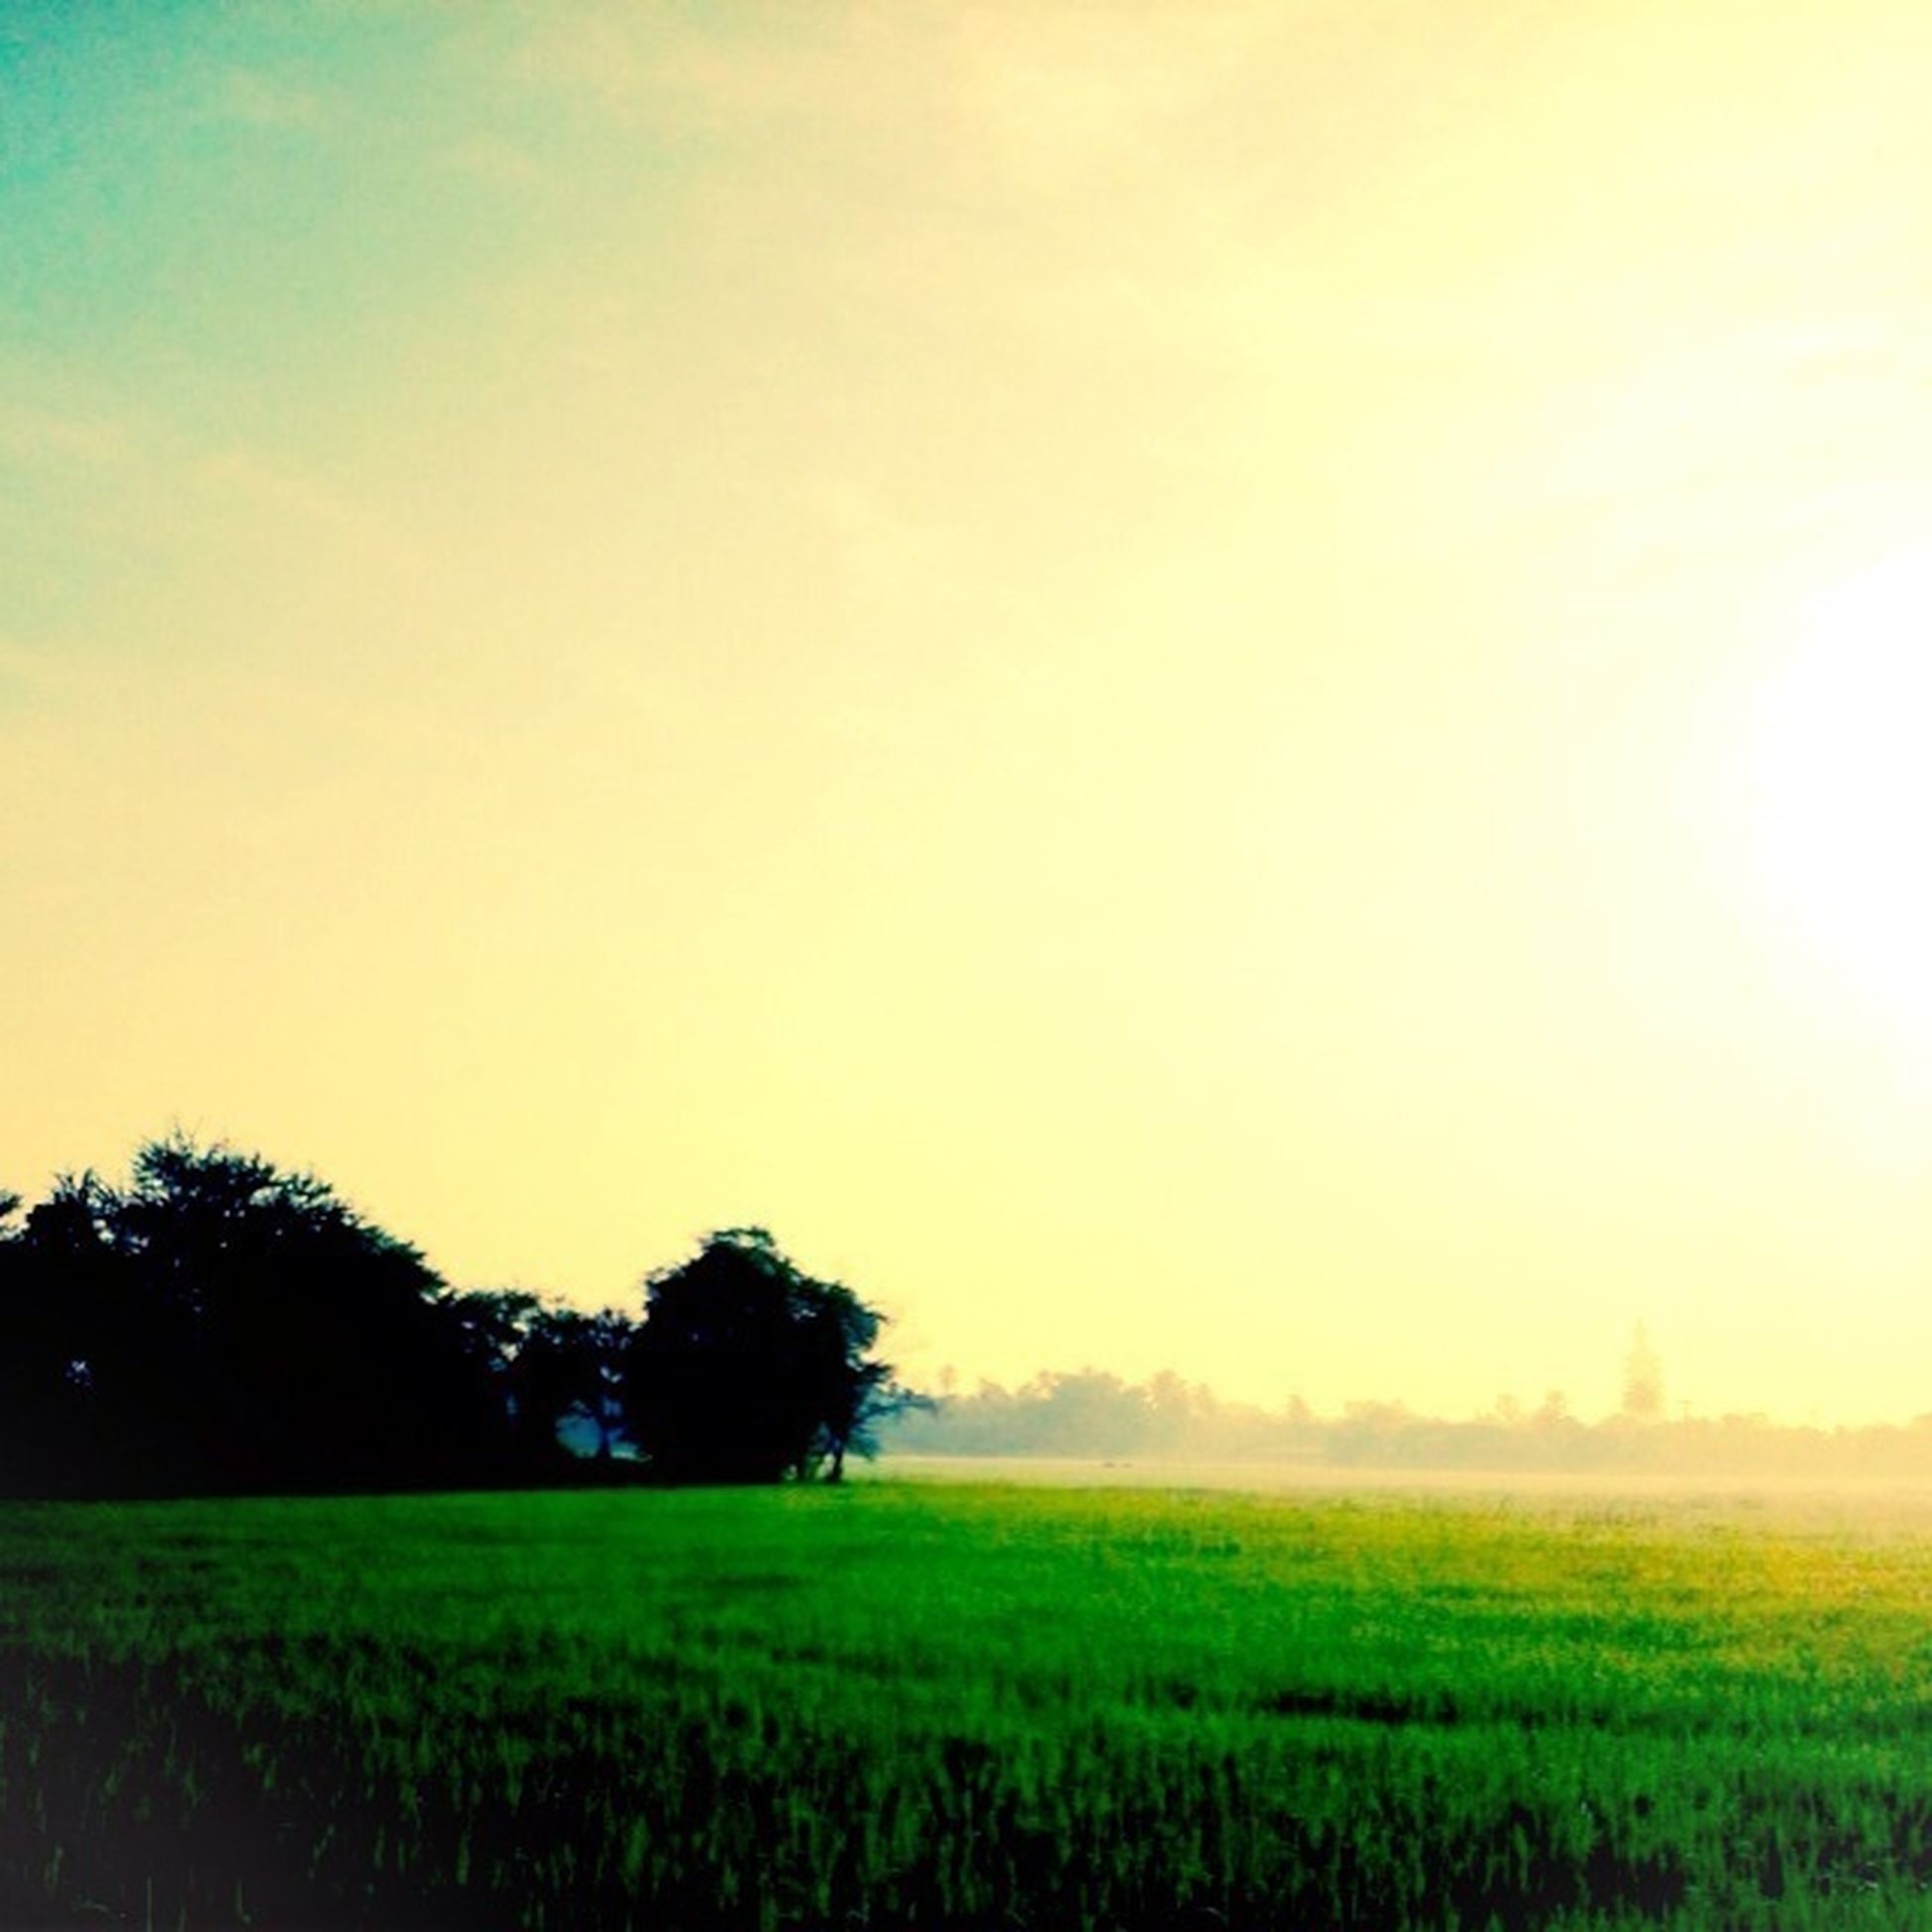 field, landscape, tranquil scene, agriculture, tranquility, rural scene, tree, beauty in nature, growth, scenics, farm, nature, crop, grass, cultivated land, sunset, sky, green color, clear sky, idyllic